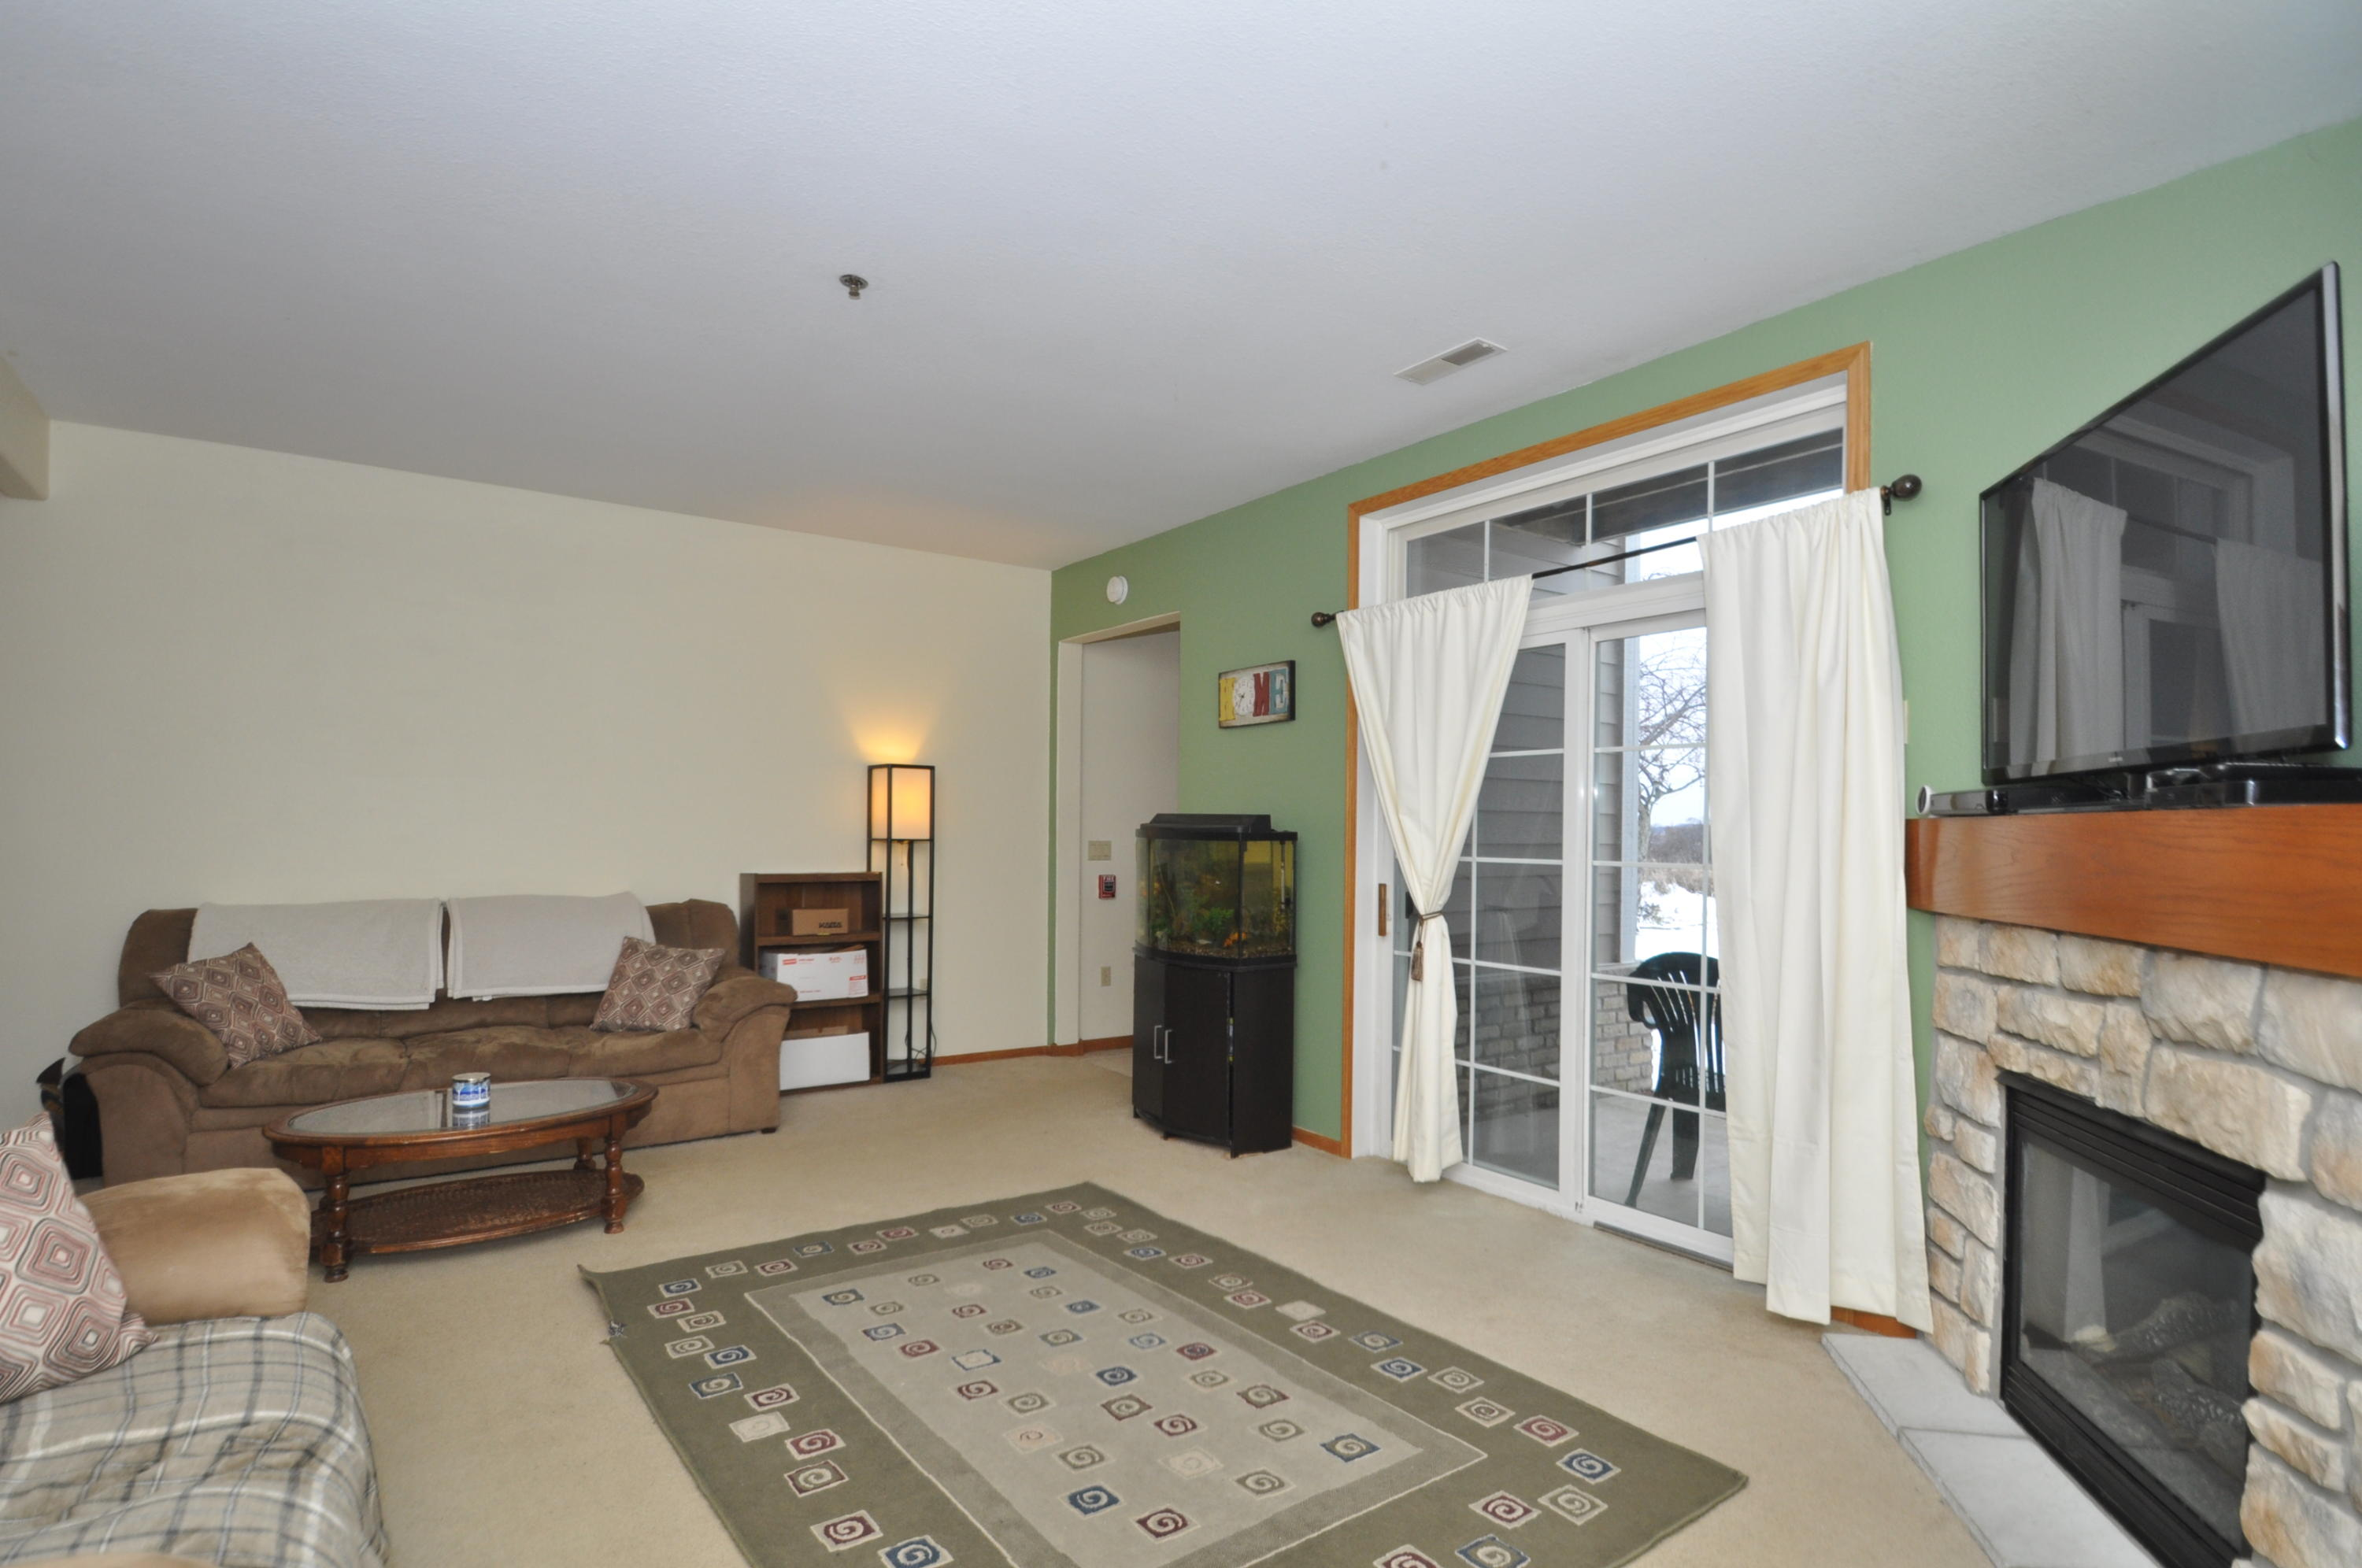 1046 River Place Blvd, Waukesha, Wisconsin 53189, 2 Bedrooms Bedrooms, ,2 BathroomsBathrooms,Condominiums,For Sale,River Place Blvd,1,1615450